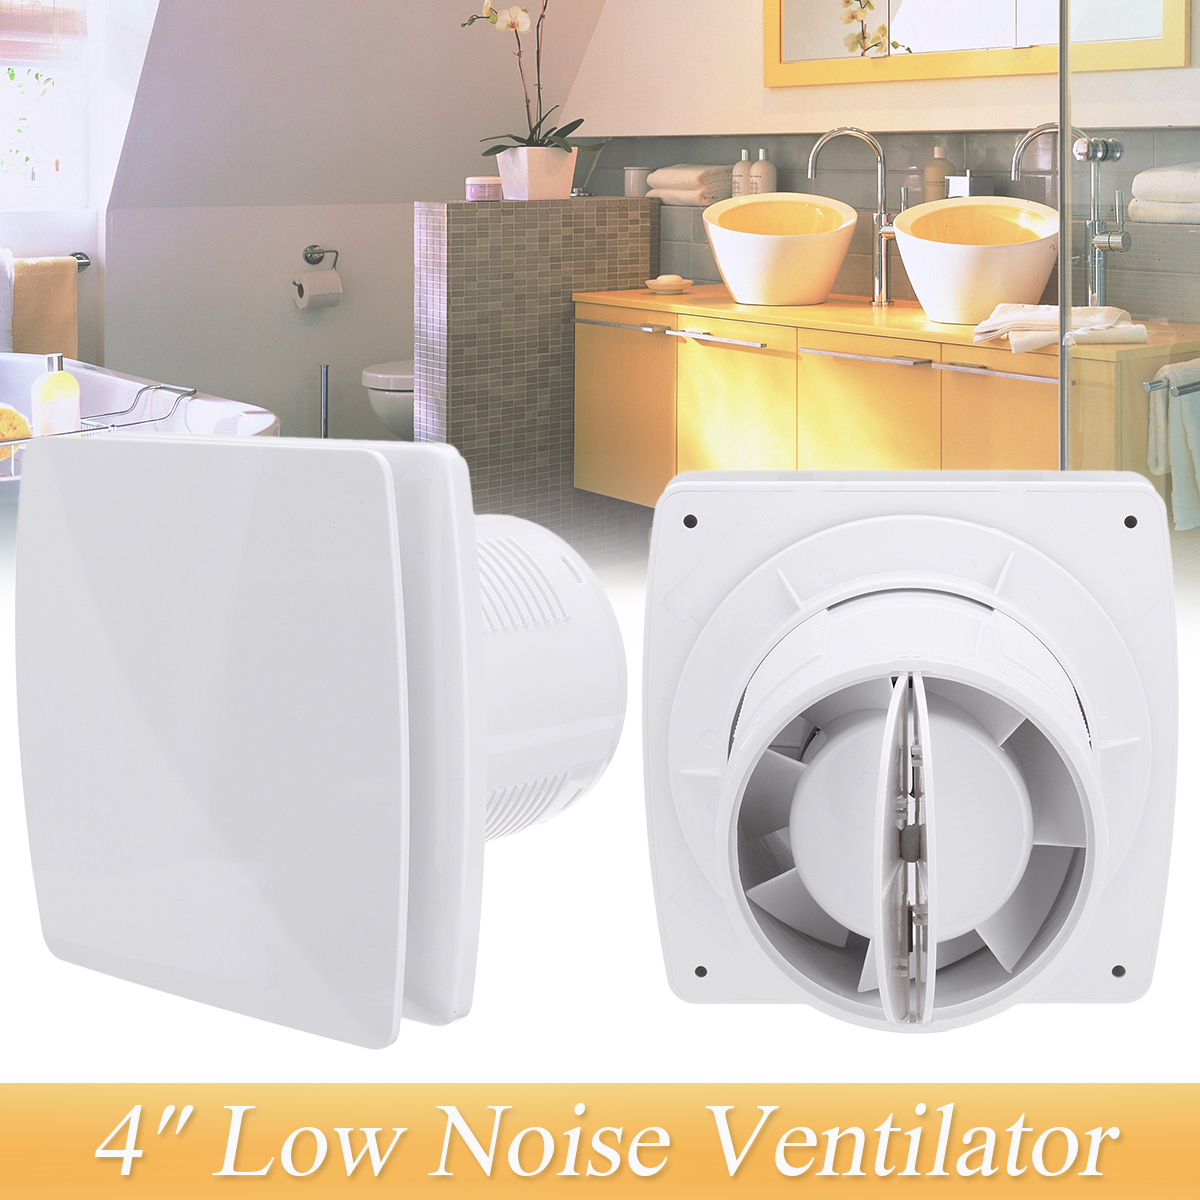 220V 4/6 Inch Ventilation Fan Household Low Noise Bathroom Hotel Wall Silent Extractor Exhaust Fan For Kitchen Bedroom Toilet